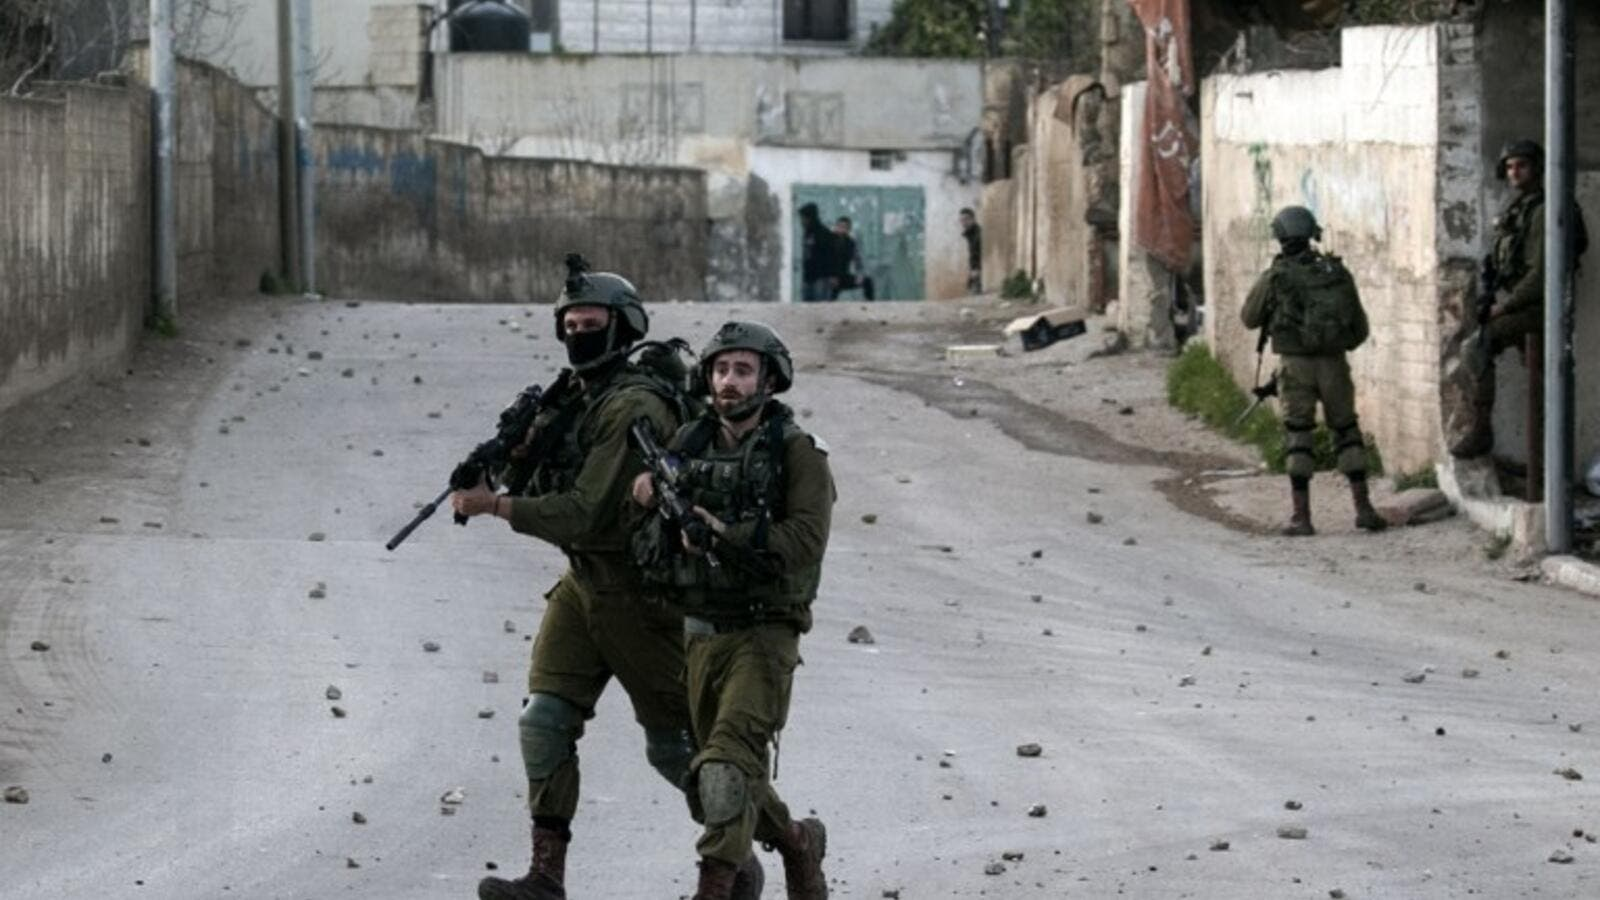 Israeli soldiers advance through the Palestinian village of Burqin in the northern occupied West Bank, during an army search operation on Feb. 3, 2018 (JAAFAR ASHTIYEH / AFP)